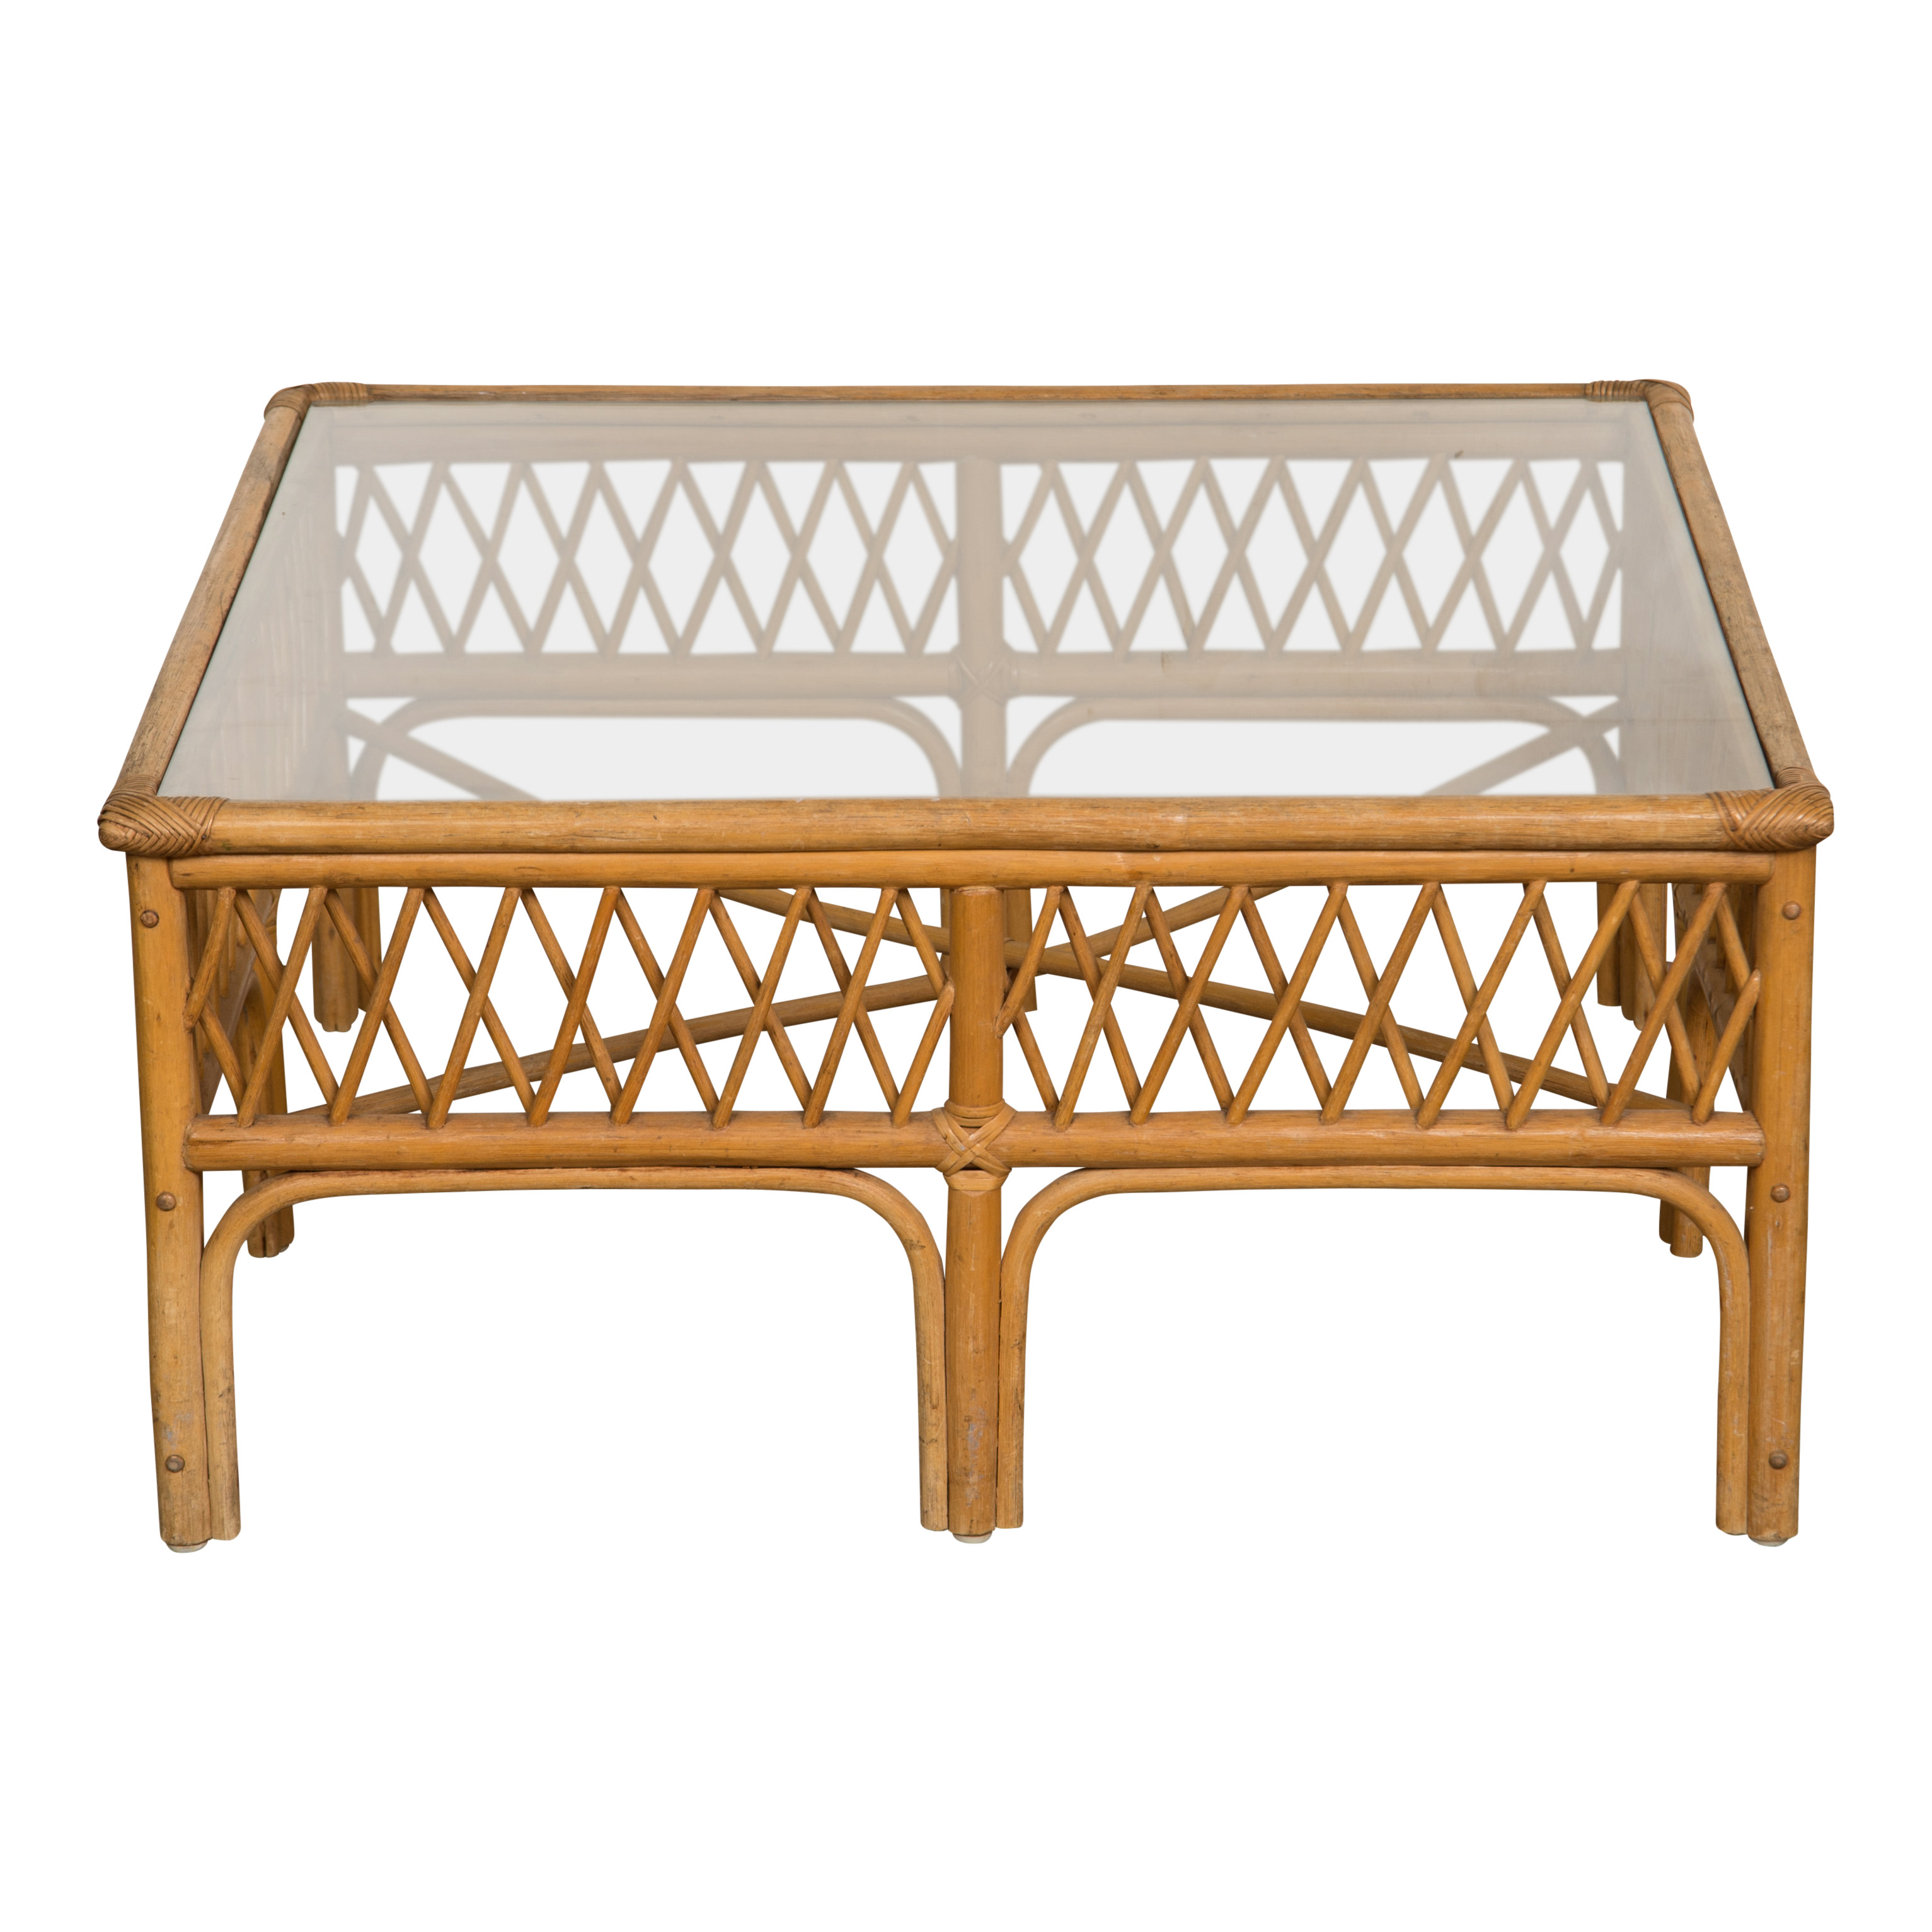 Barolina Coffee Table